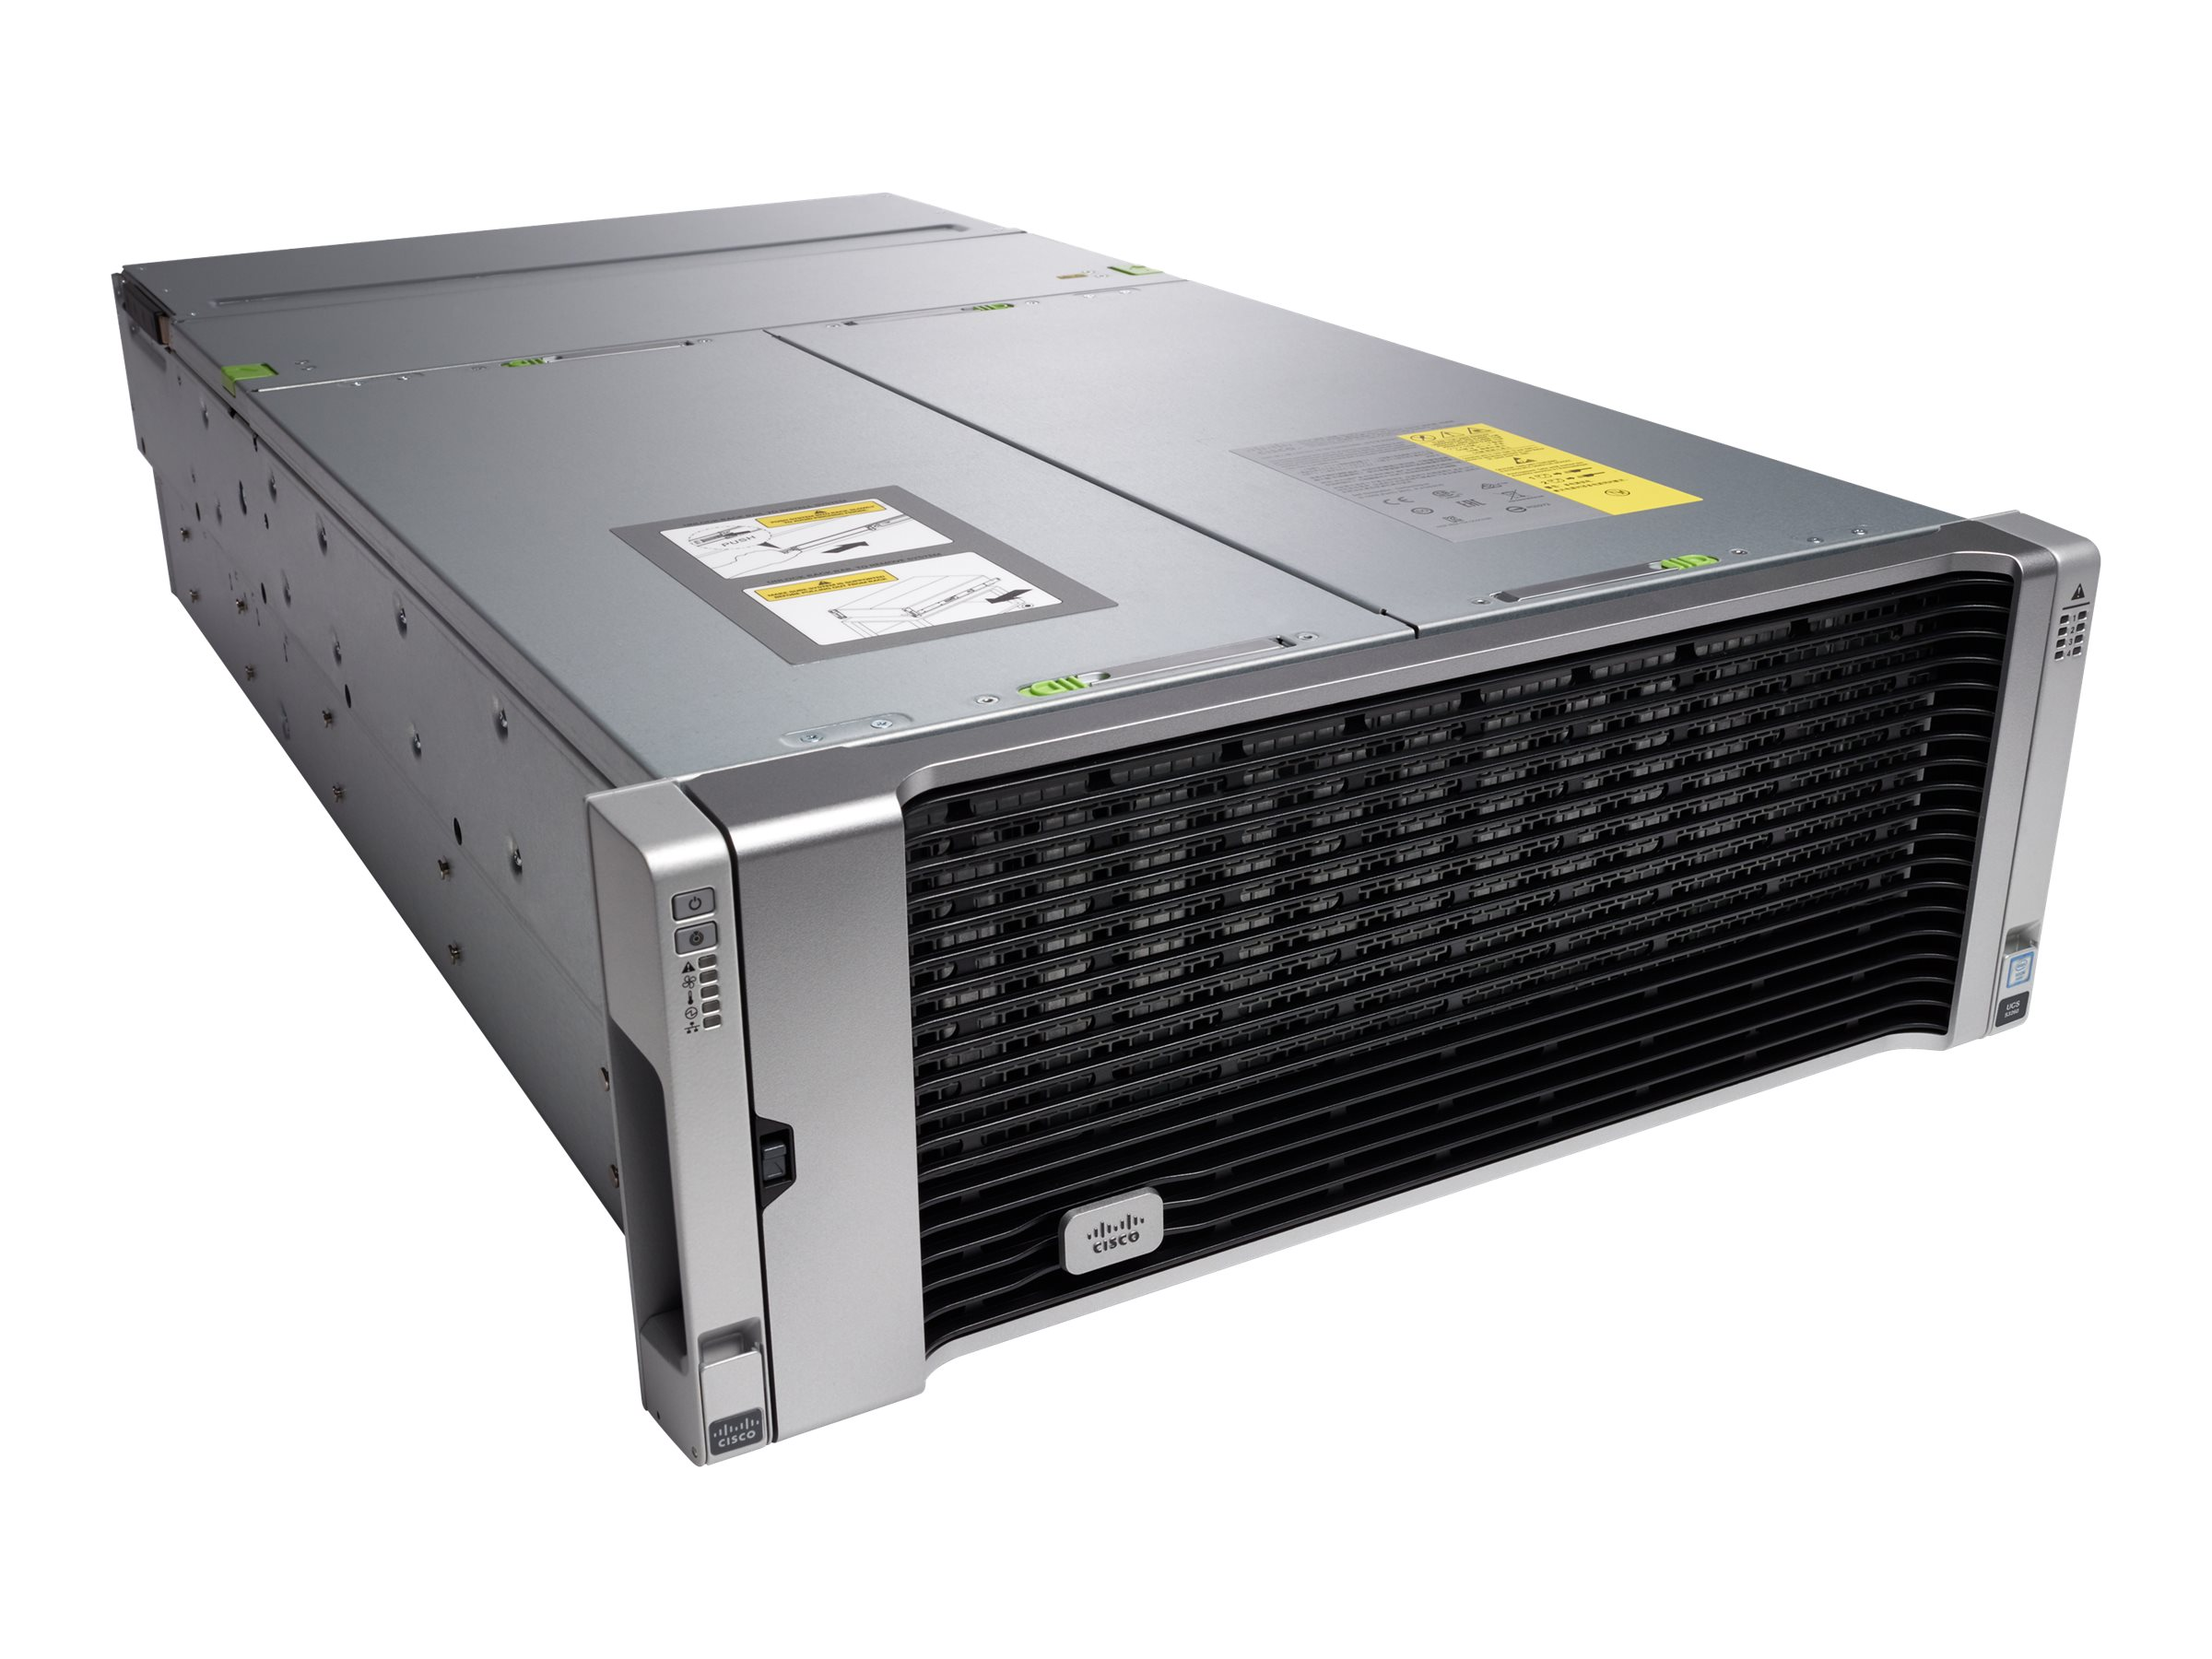 Cisco UCS S3260 Storage Server Base Chassis, UCSS-S3260